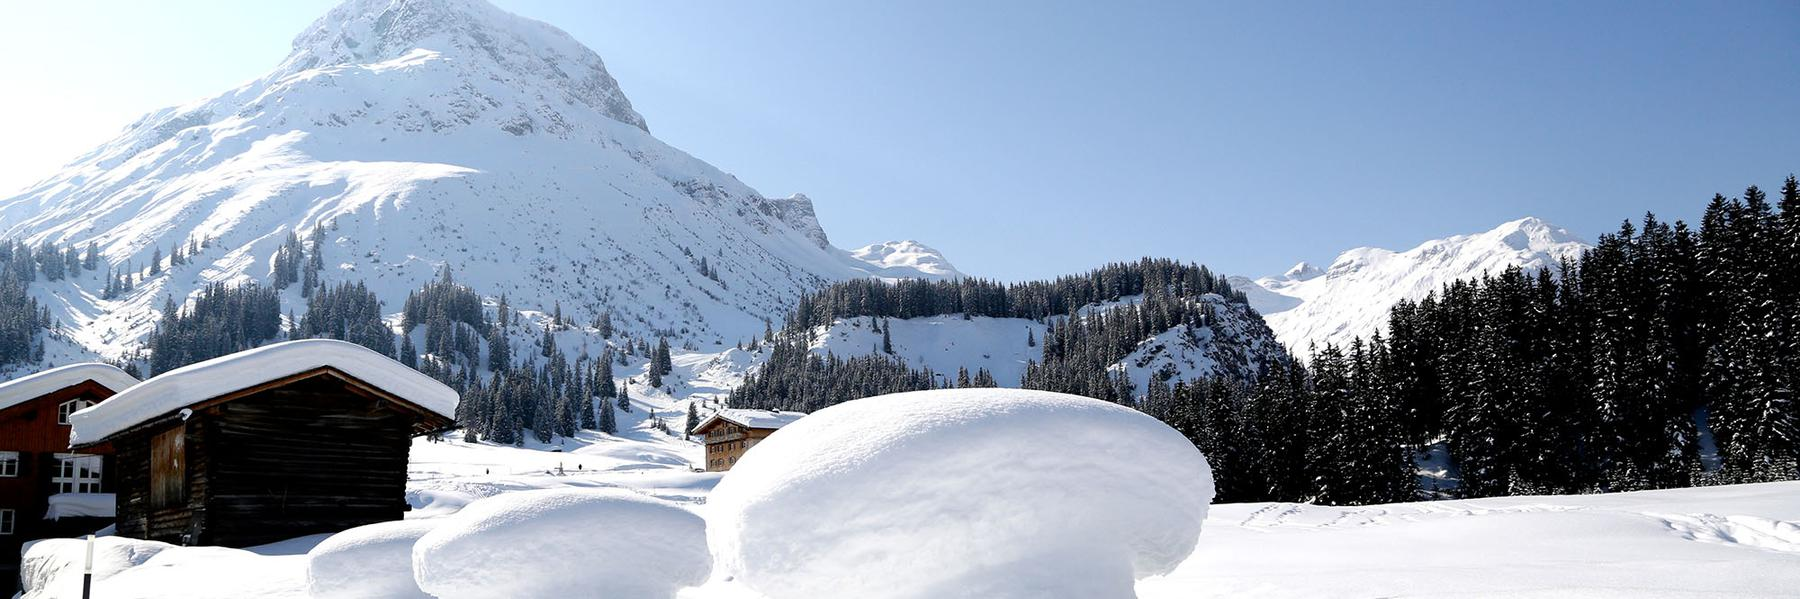 Hotel Austria in Lech, Arlberg Winter